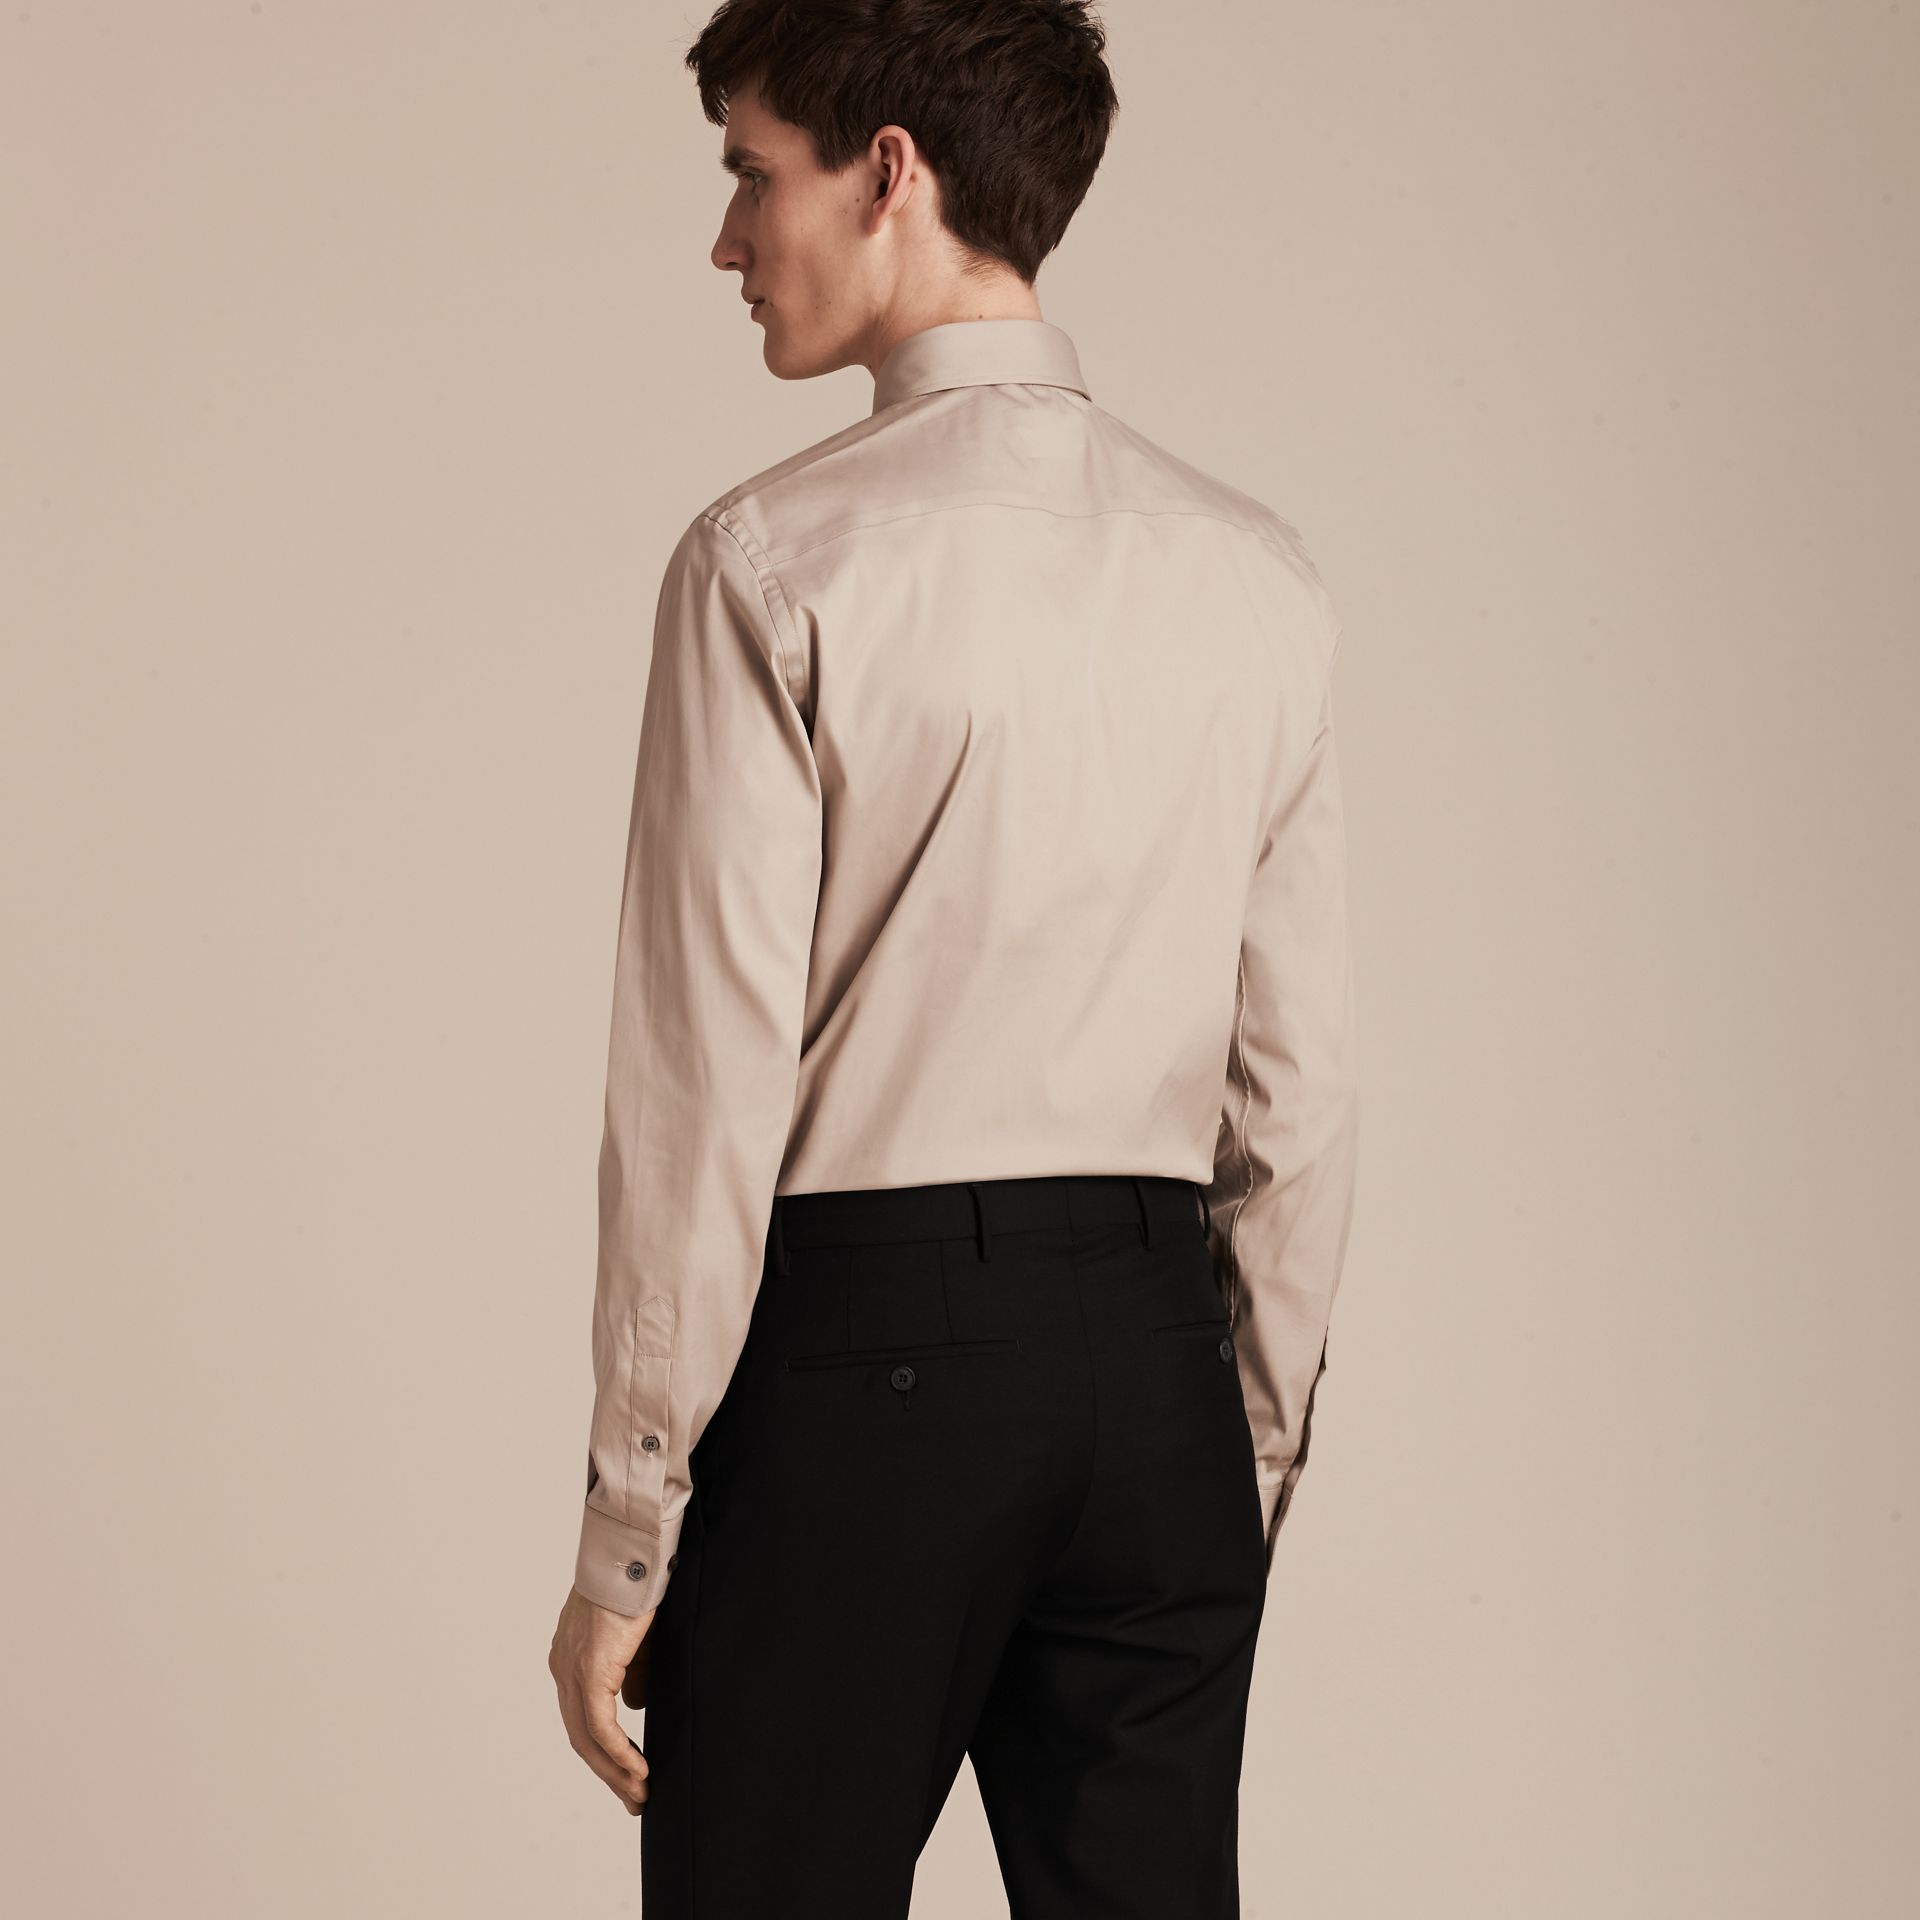 Taupe Slim Fit Stretch Cotton Blend Shirt Taupe - gallery image 3